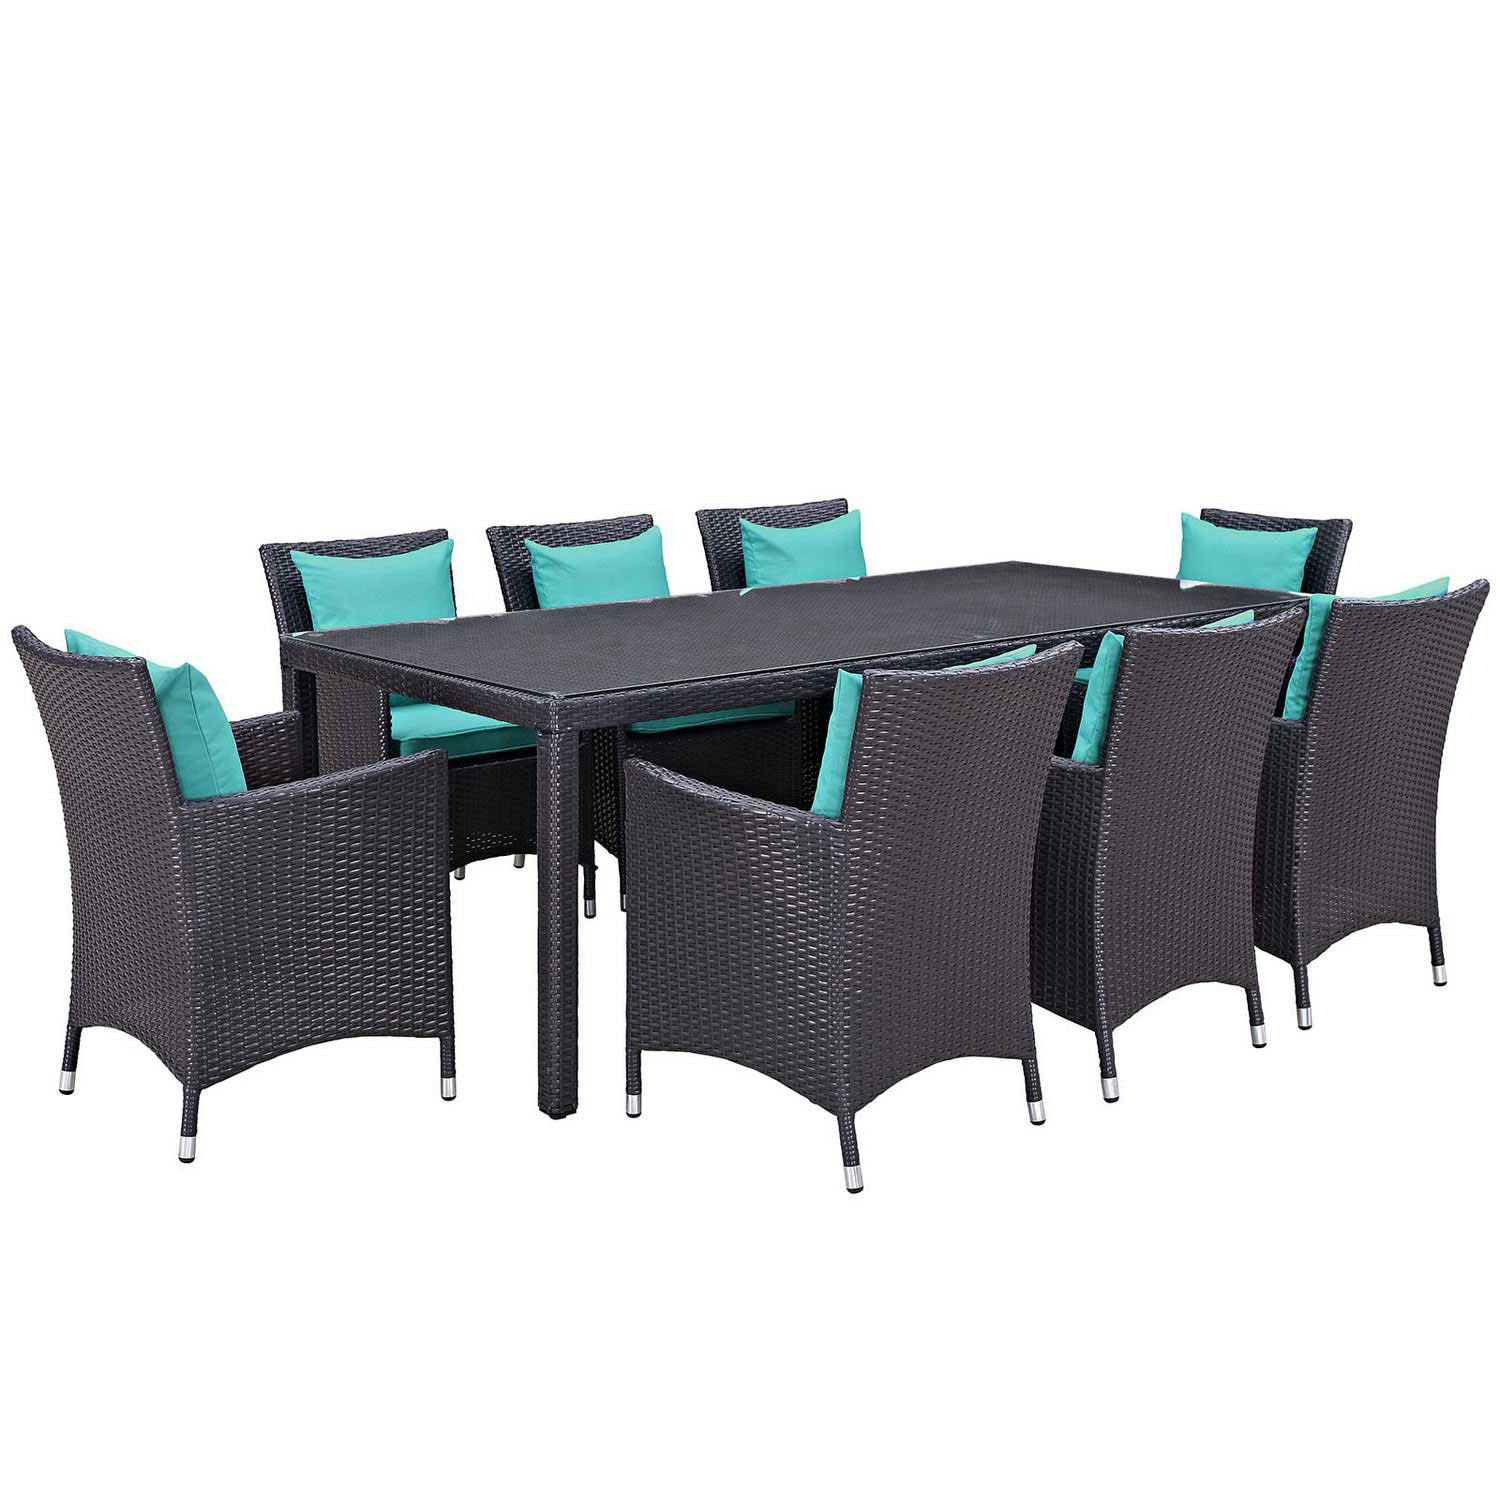 Modway Convene 9 Piece Outdoor Patio Dining Set - Espresso Turquoise